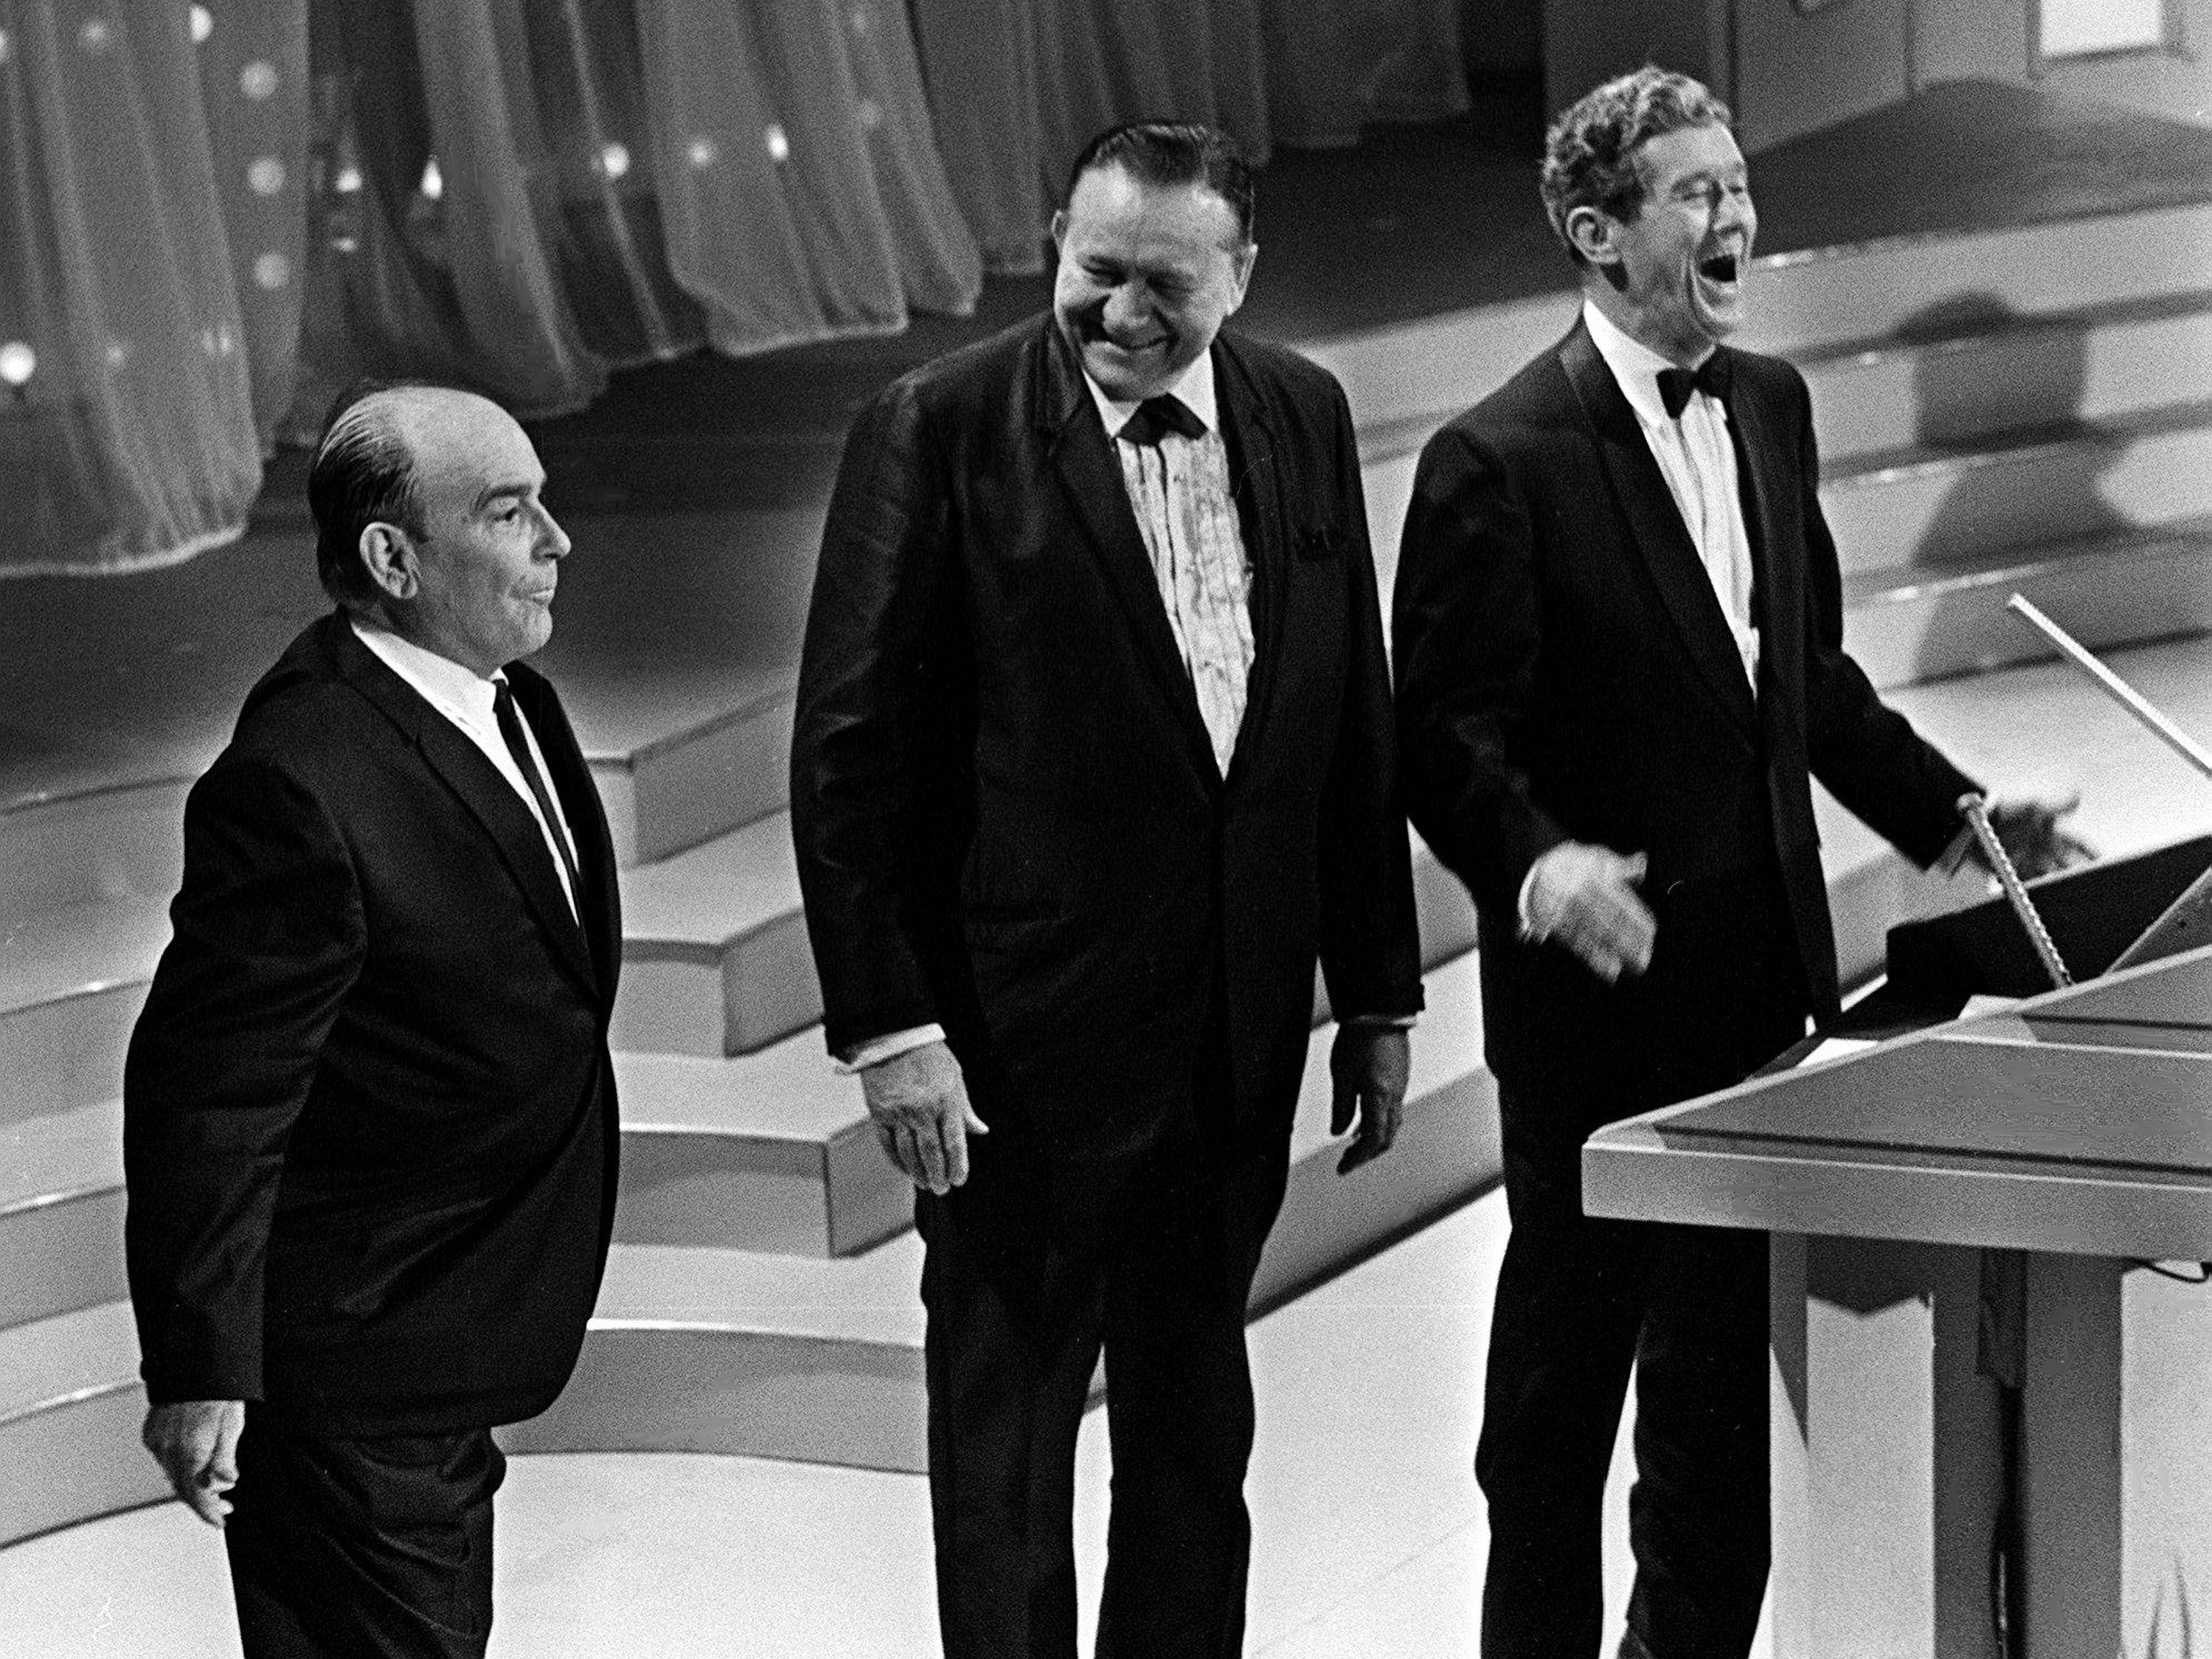 """""""Texas Playboy"""" Bob Wills, left, writer of """"San Antonio Rose,"""" is named to the Country Music Hall of Fame during the second annual CMA Awards show at the Ryman Auditorium on Oct. 18, 1968. Roy Acuff, right, and Tex Ritter made the presentation."""